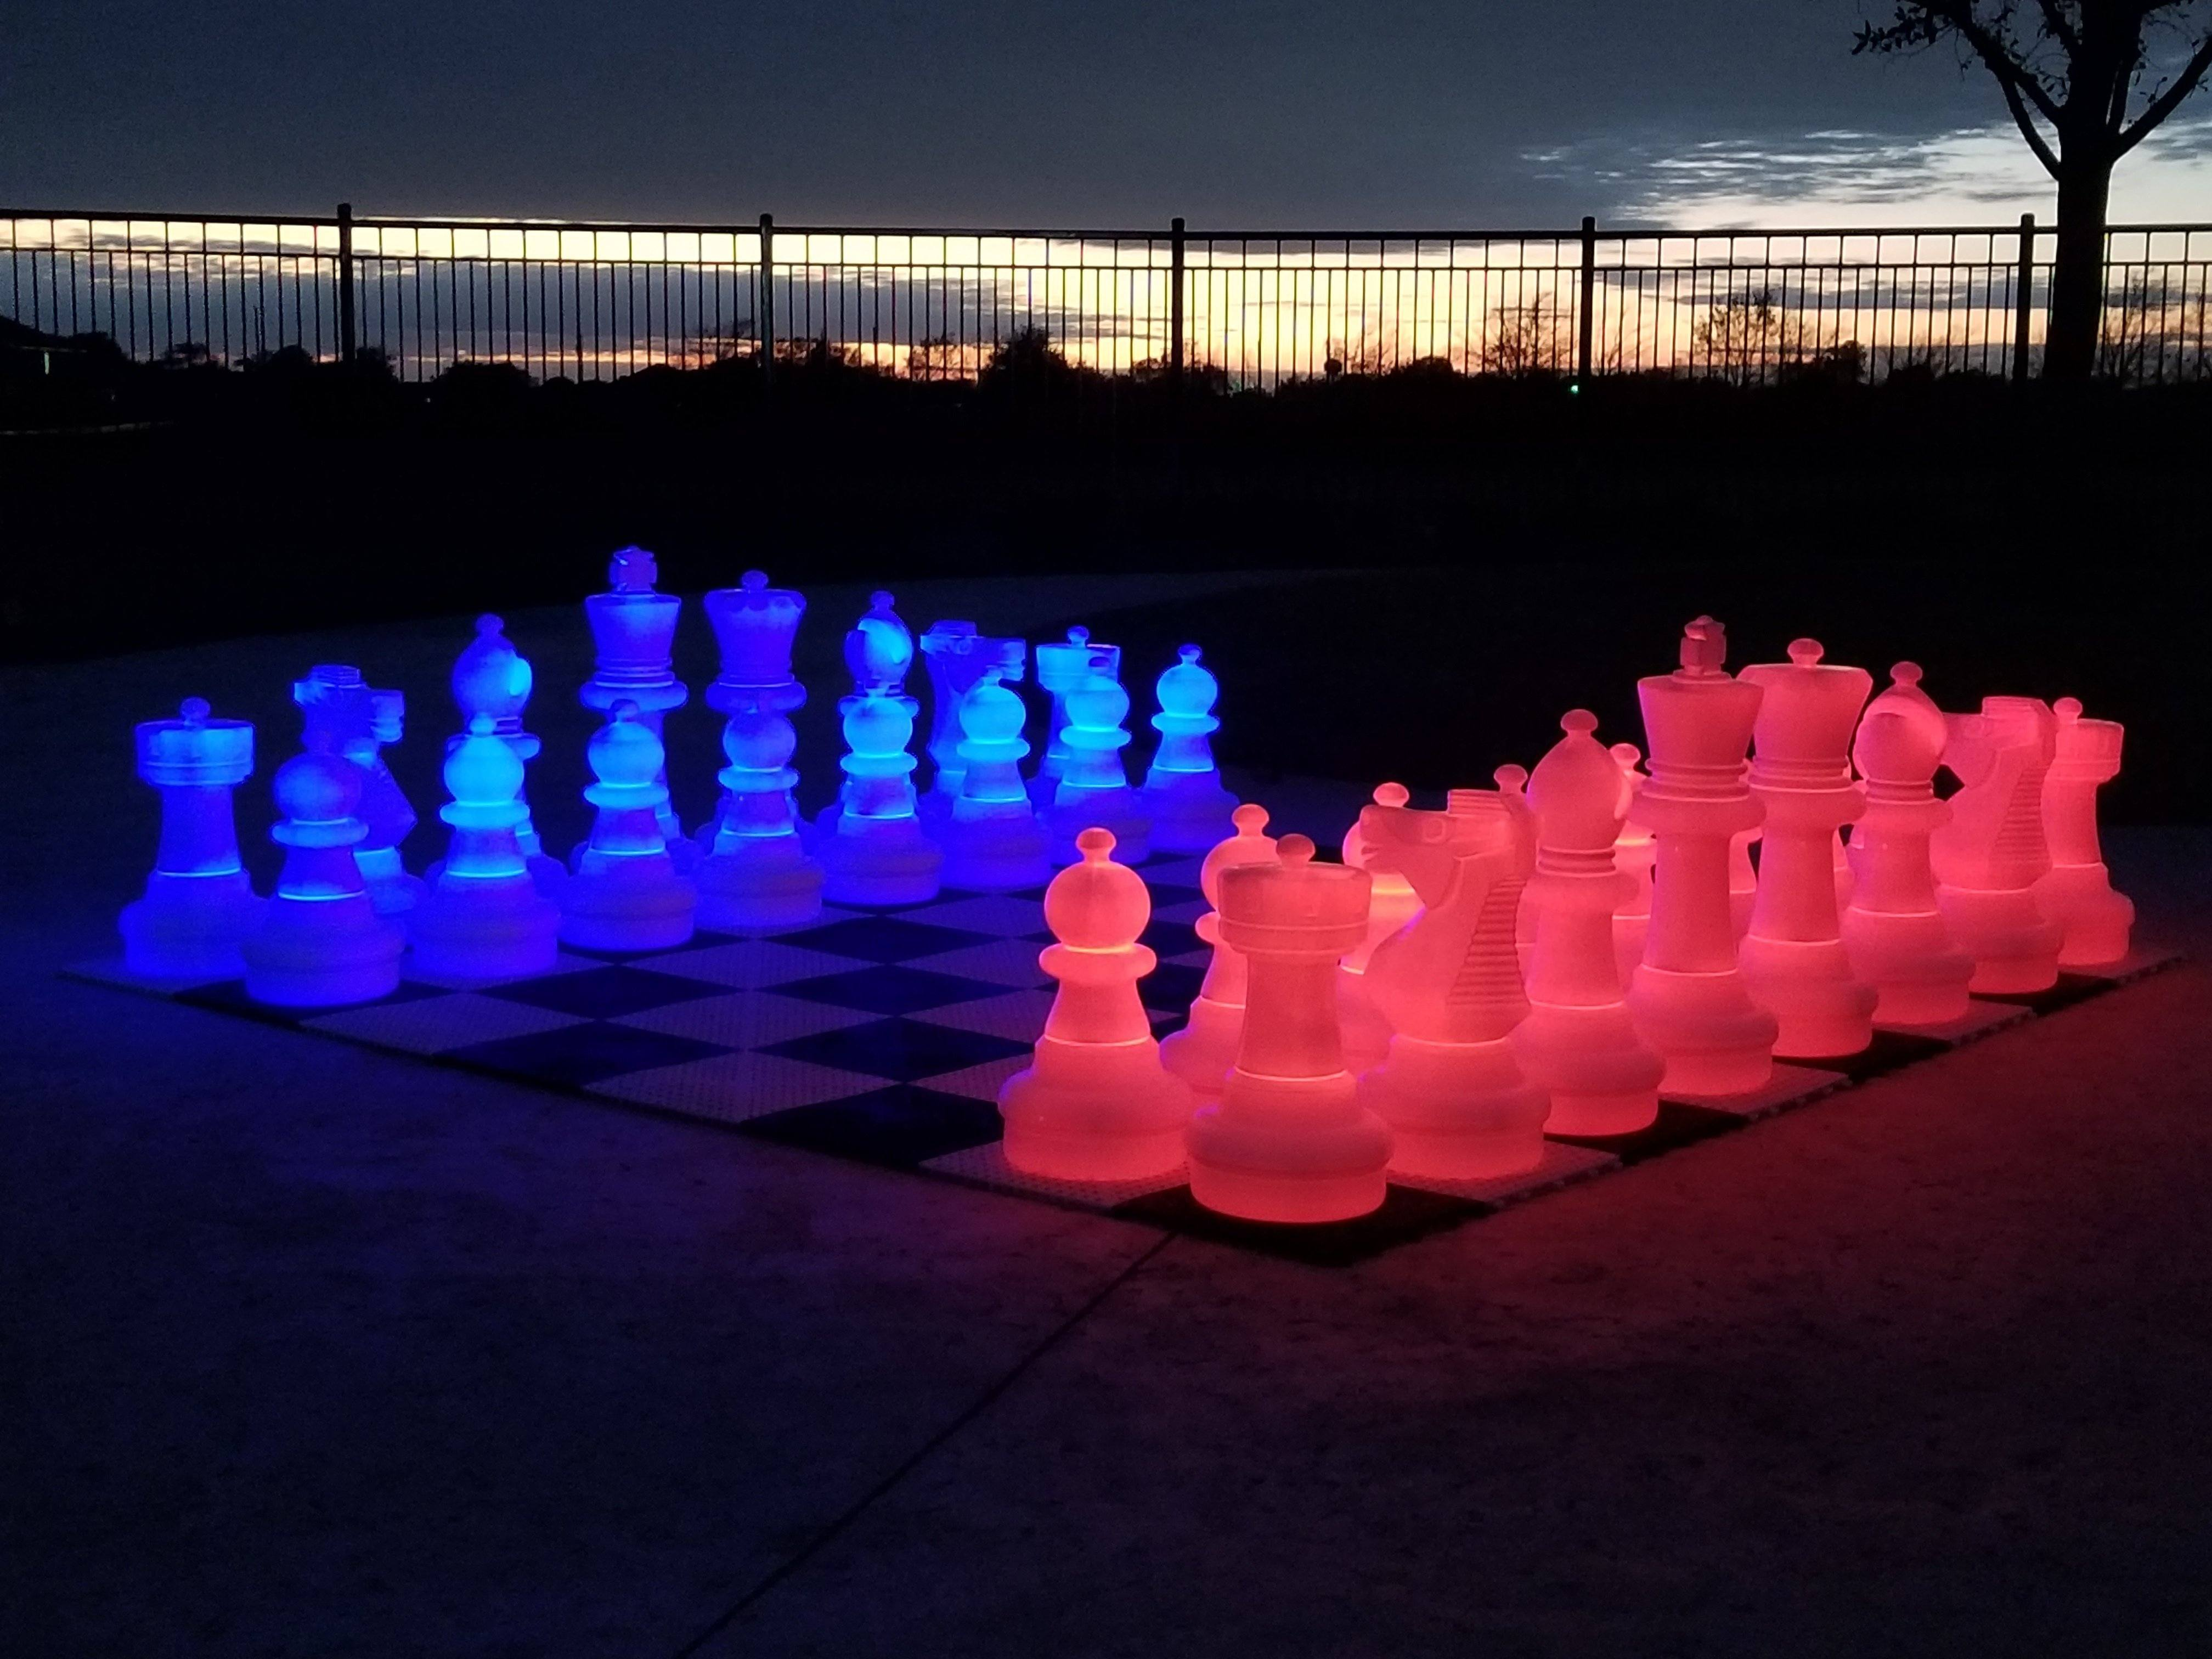 Giant LED Light-Up Chess Sets